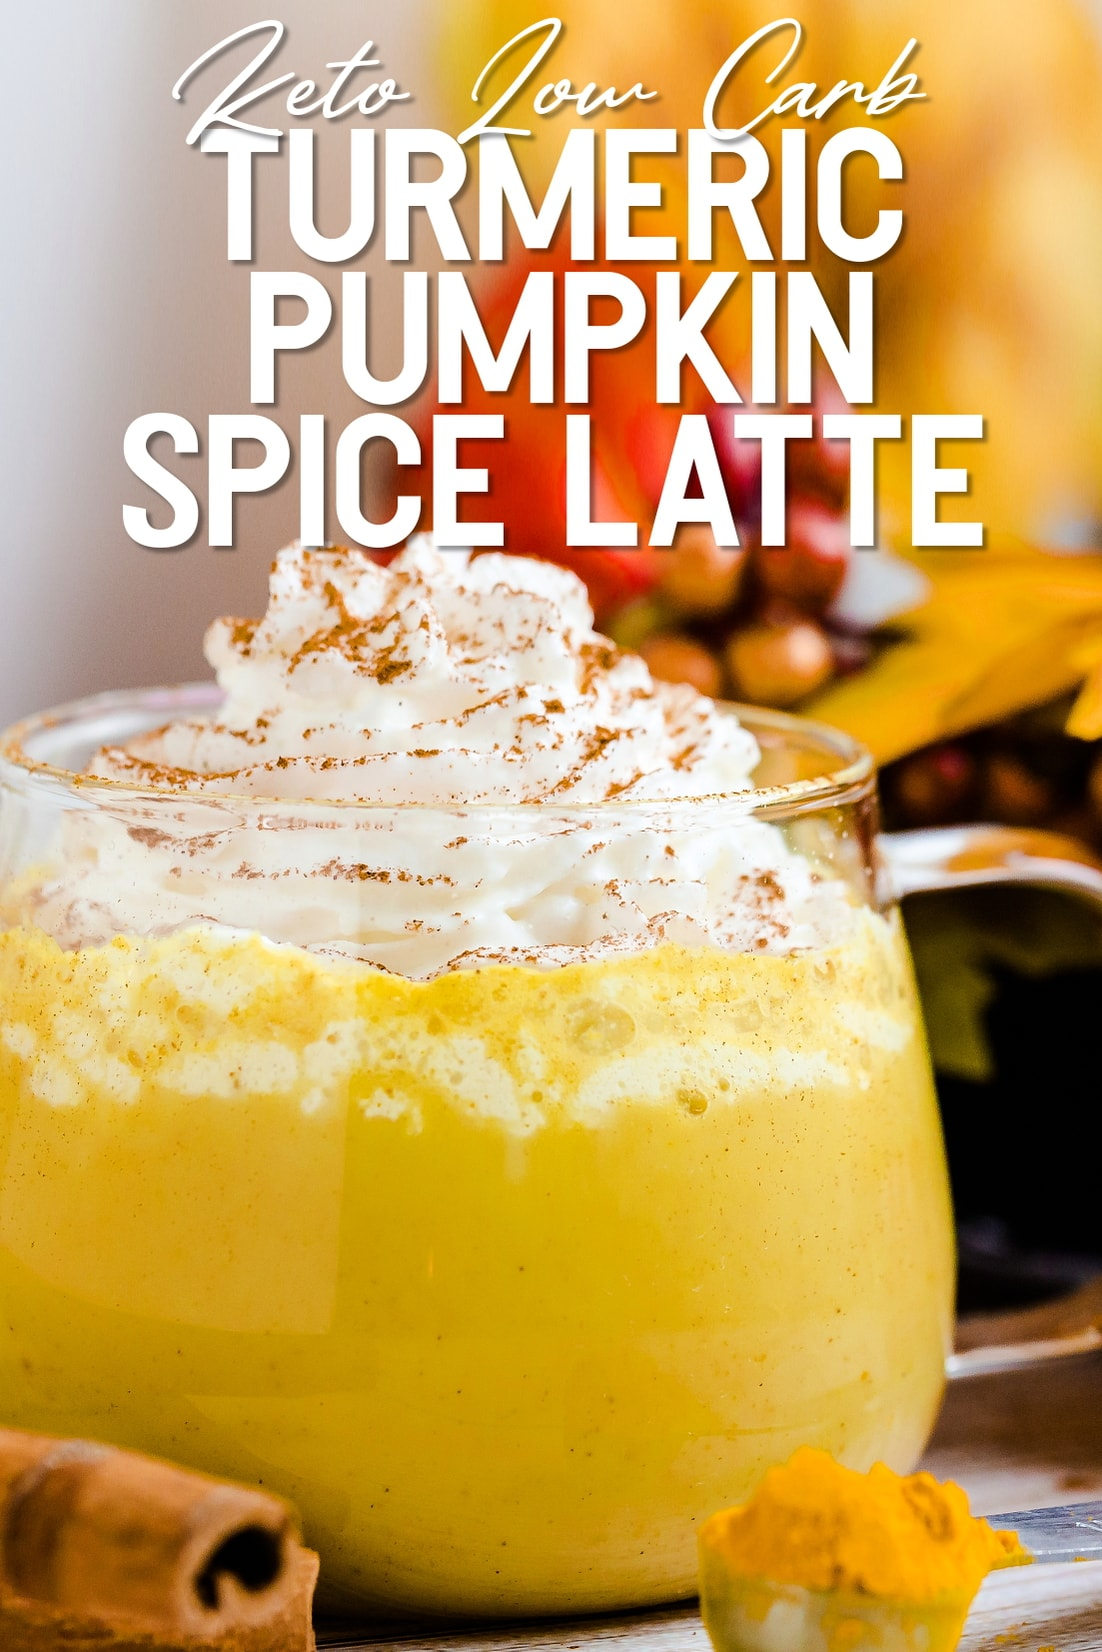 Keto Low Carb Turmeric Pumpkin Spice Latte side view with whipped cream